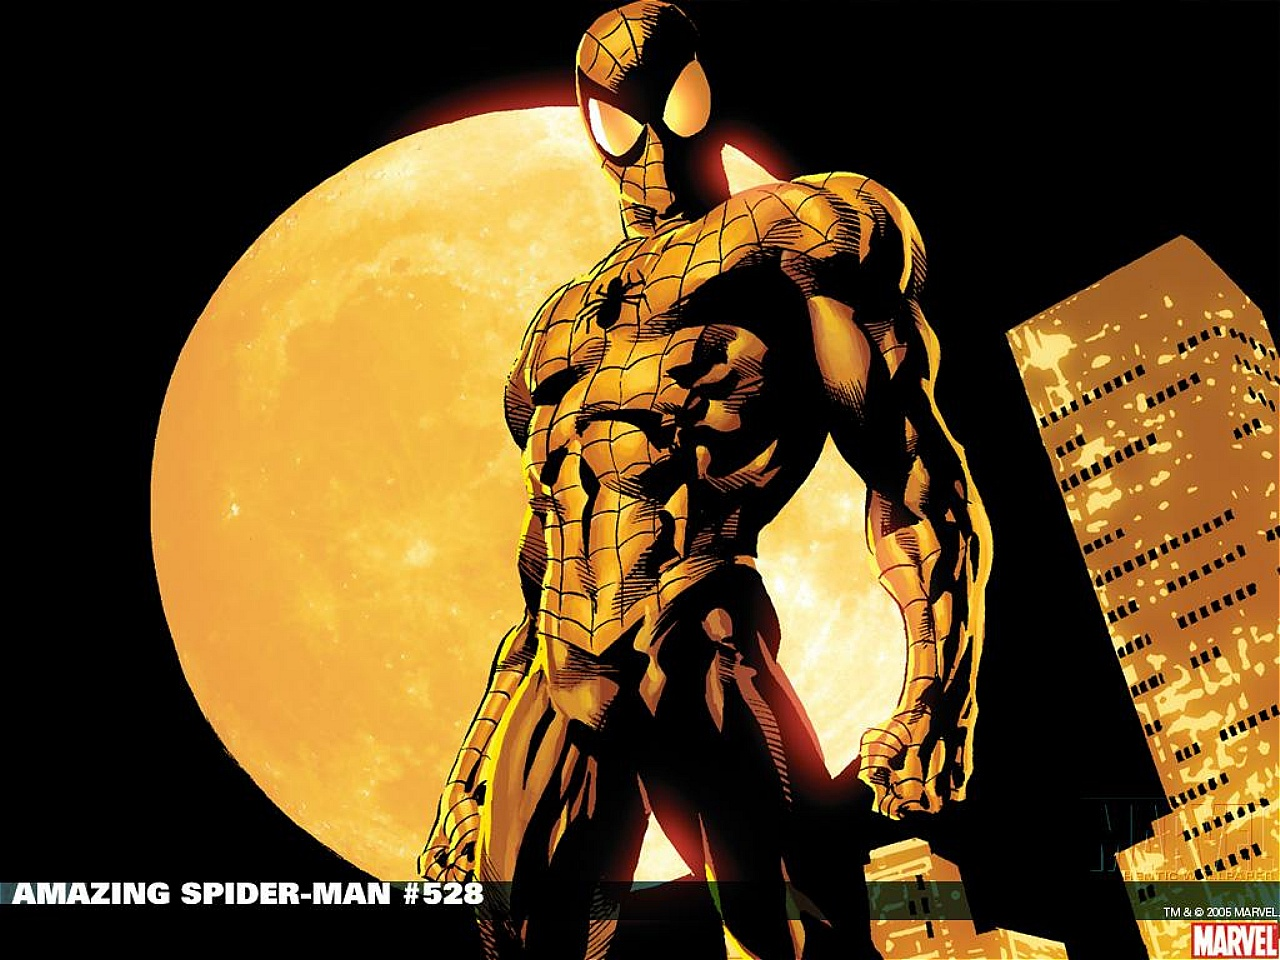 The amazing spider man wallpapers pictures images - Man wallpaper ...